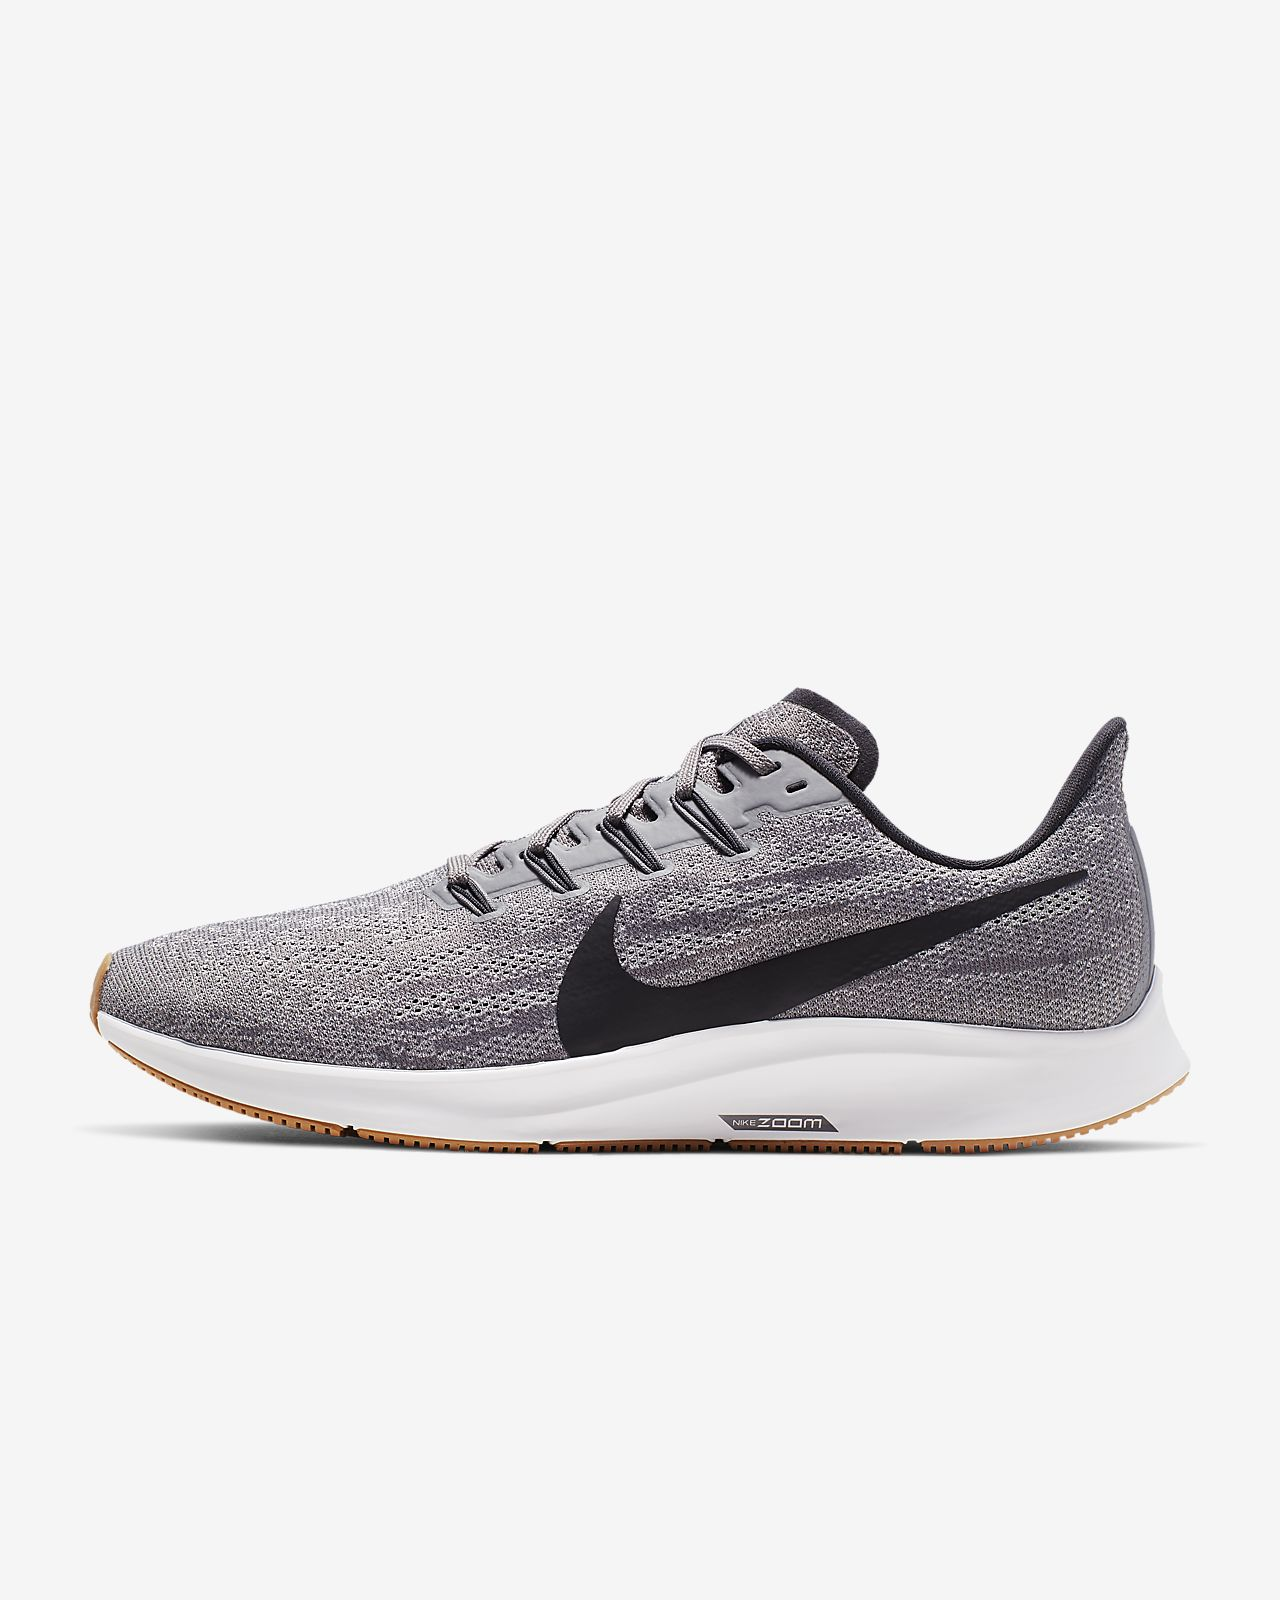 hot sale online 7ad12 ddd29 Nike Air Zoom Pegasus 36 Men's Running Shoe